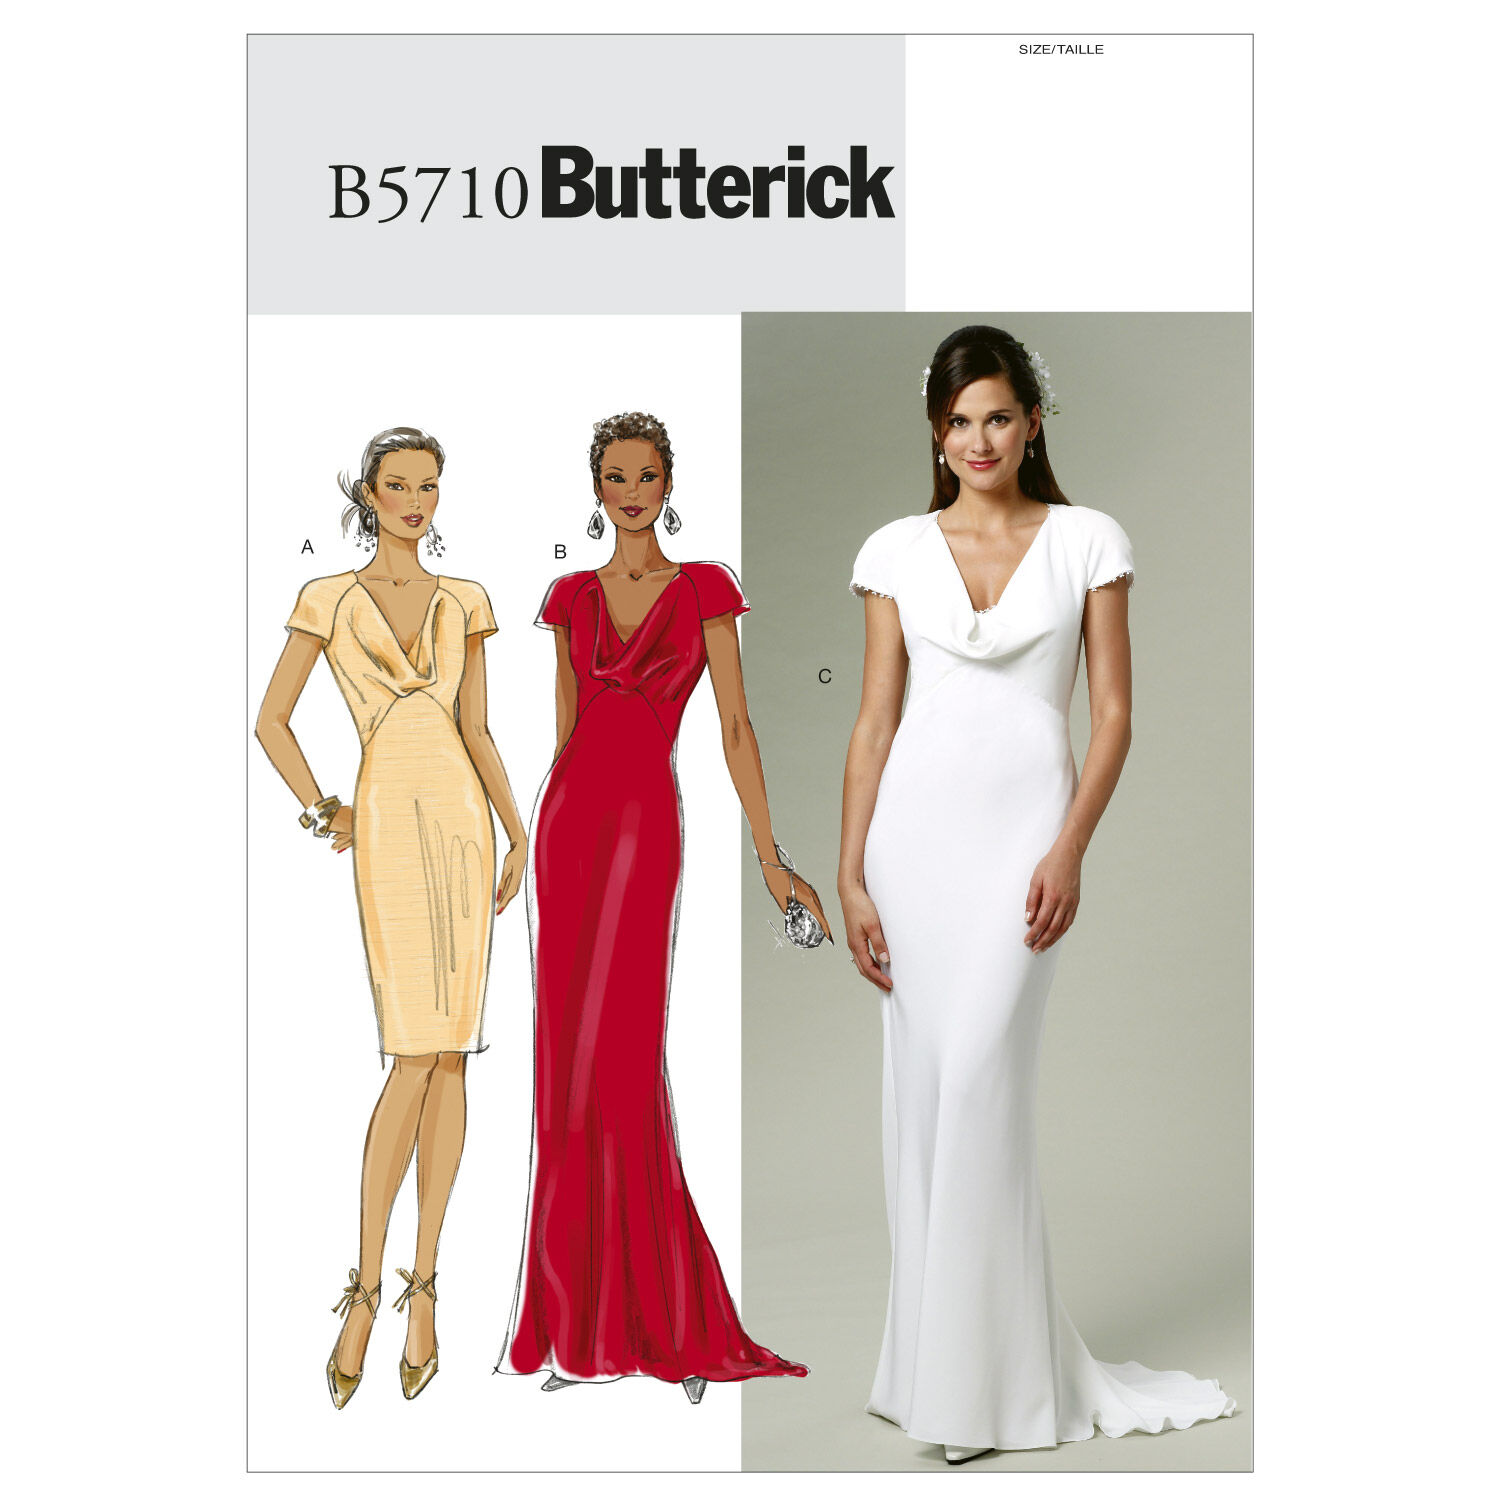 1930s Sewing Patterns- Dresses, Pants, Tops Butterick Misses Special Occasion - B5710 $11.97 AT vintagedancer.com